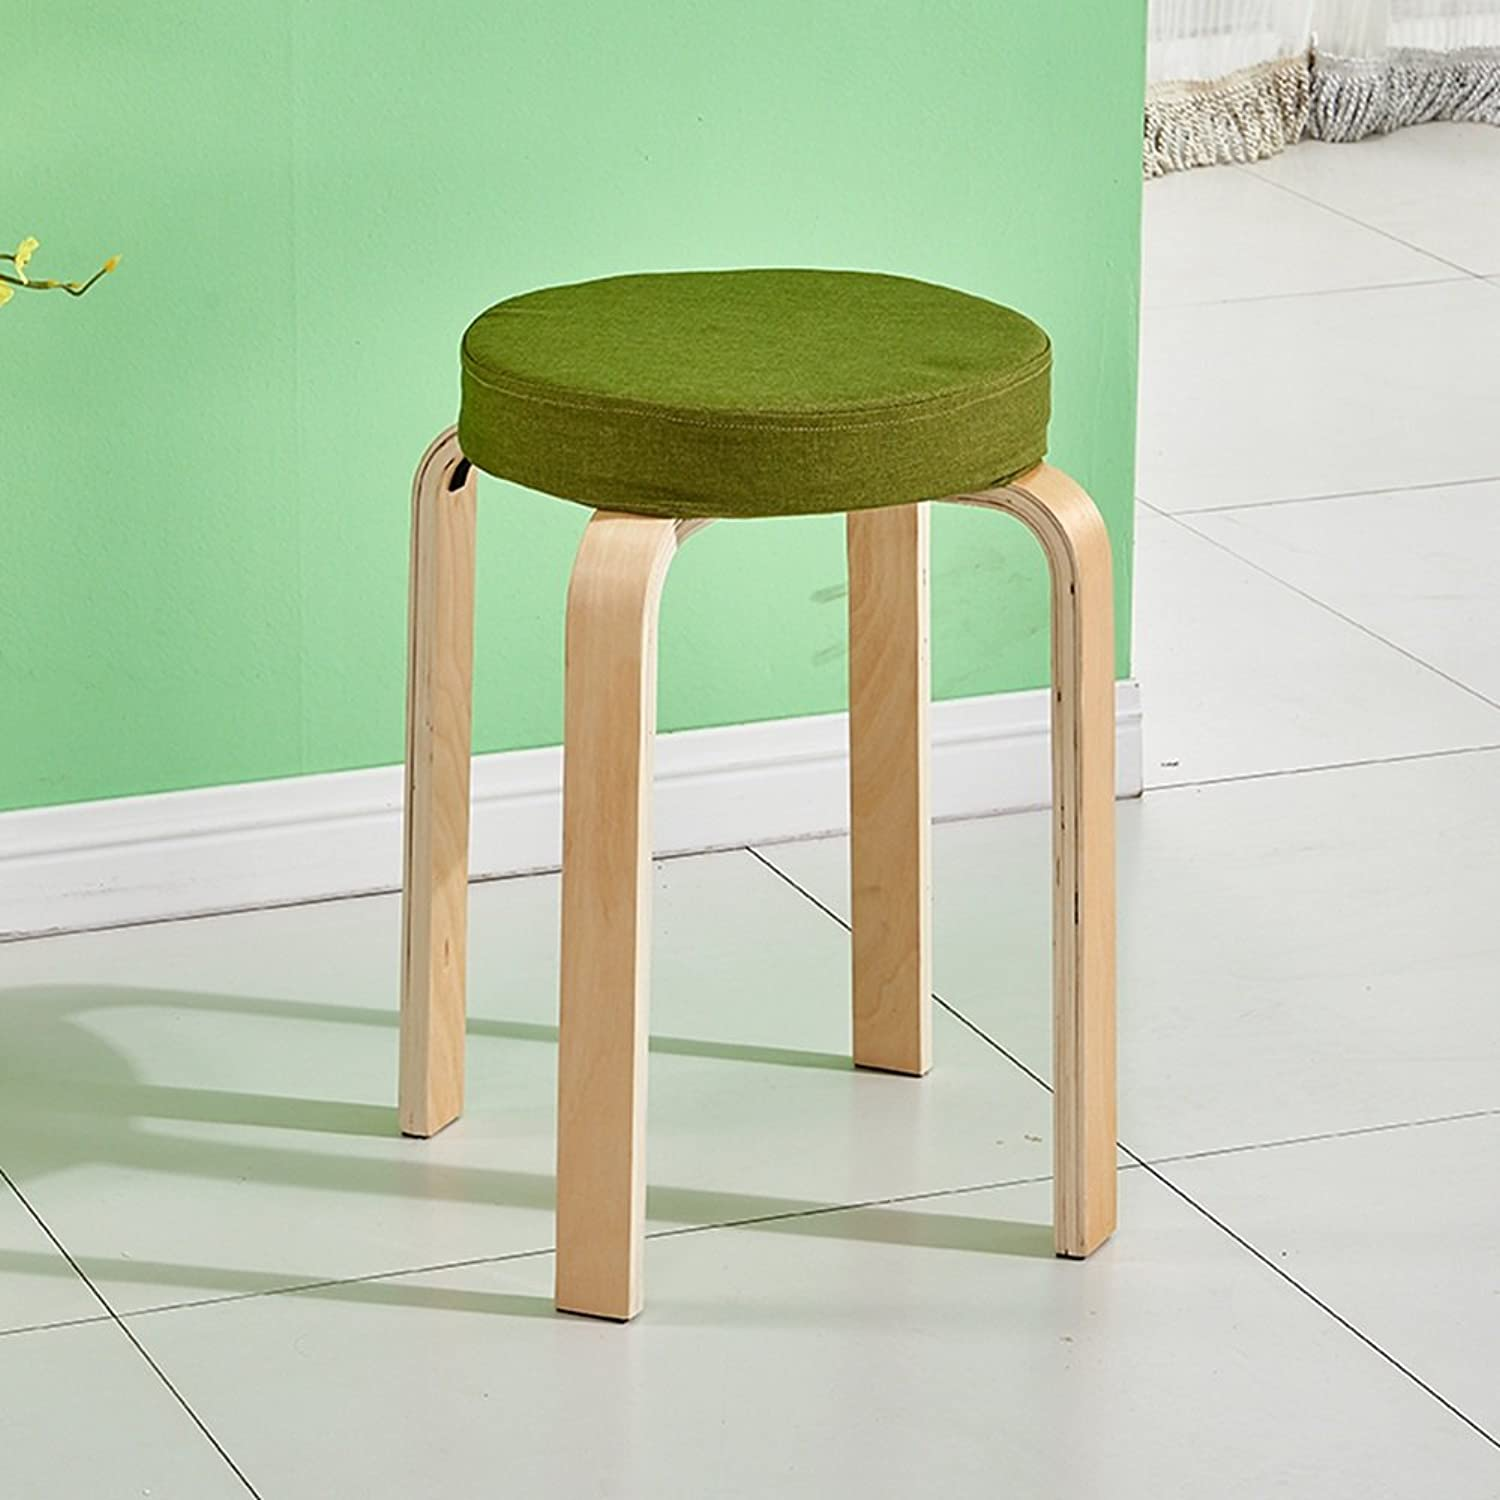 Solid Wood Stool, seat Cover Detachable, Simple Bench, Fashion Stool, Creative Living Room Table Stool (color   Green)